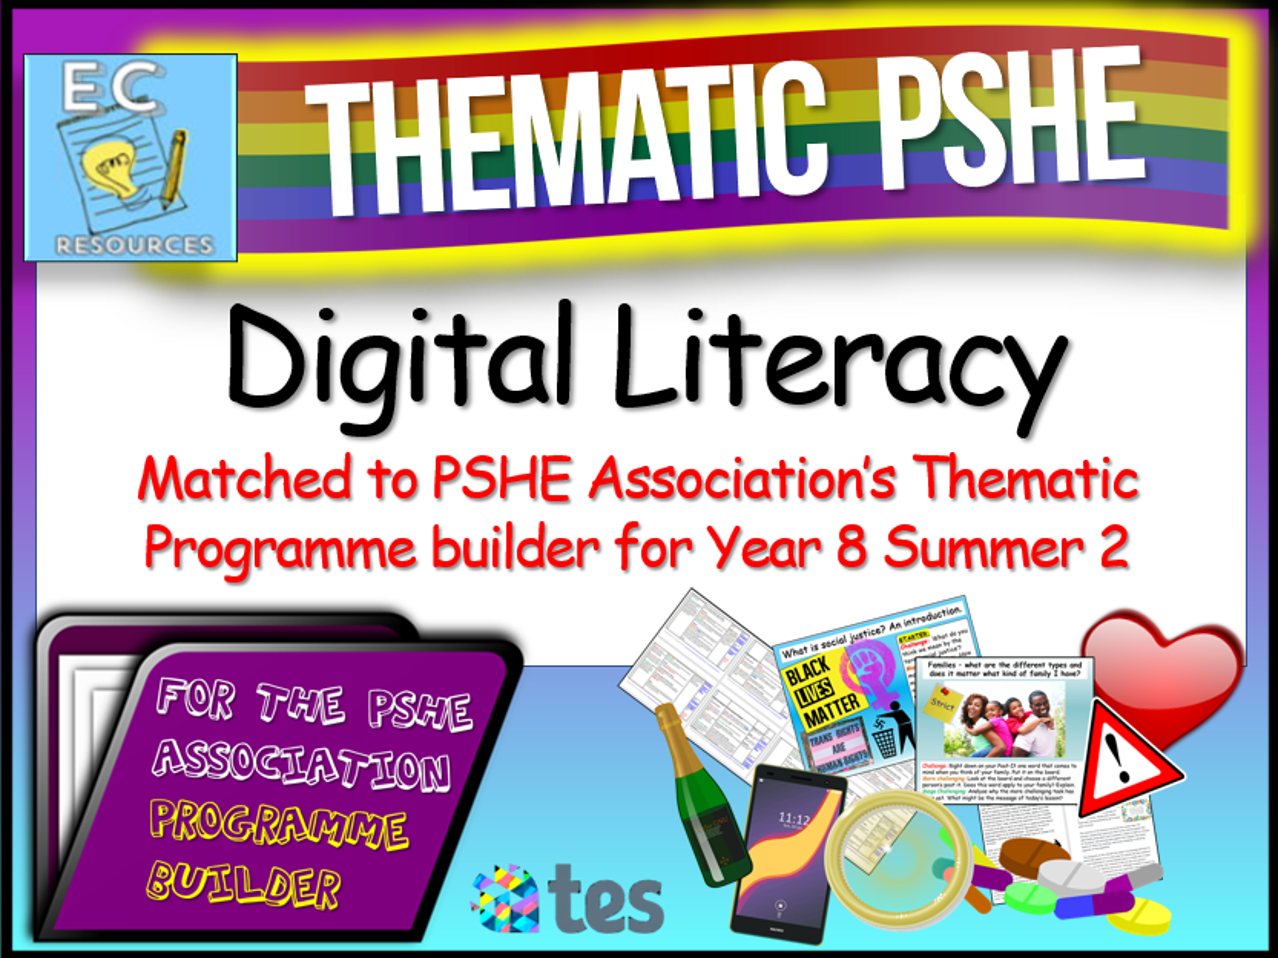 Digital Literacy Thematic PSHE